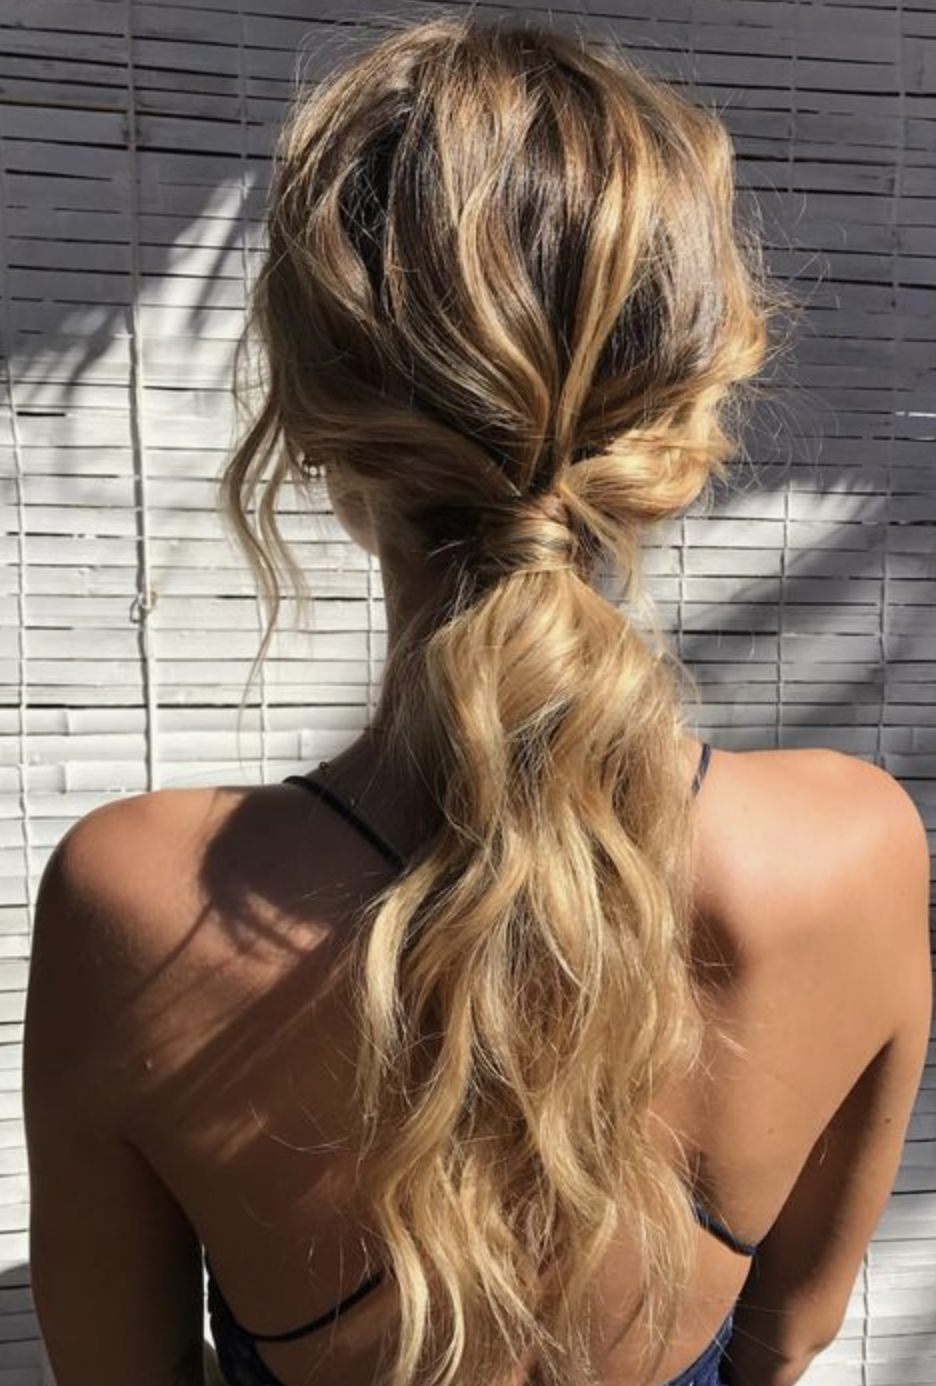 Pin by I N G R I D a on Hair ideas  Pinterest  Pony hairstyles